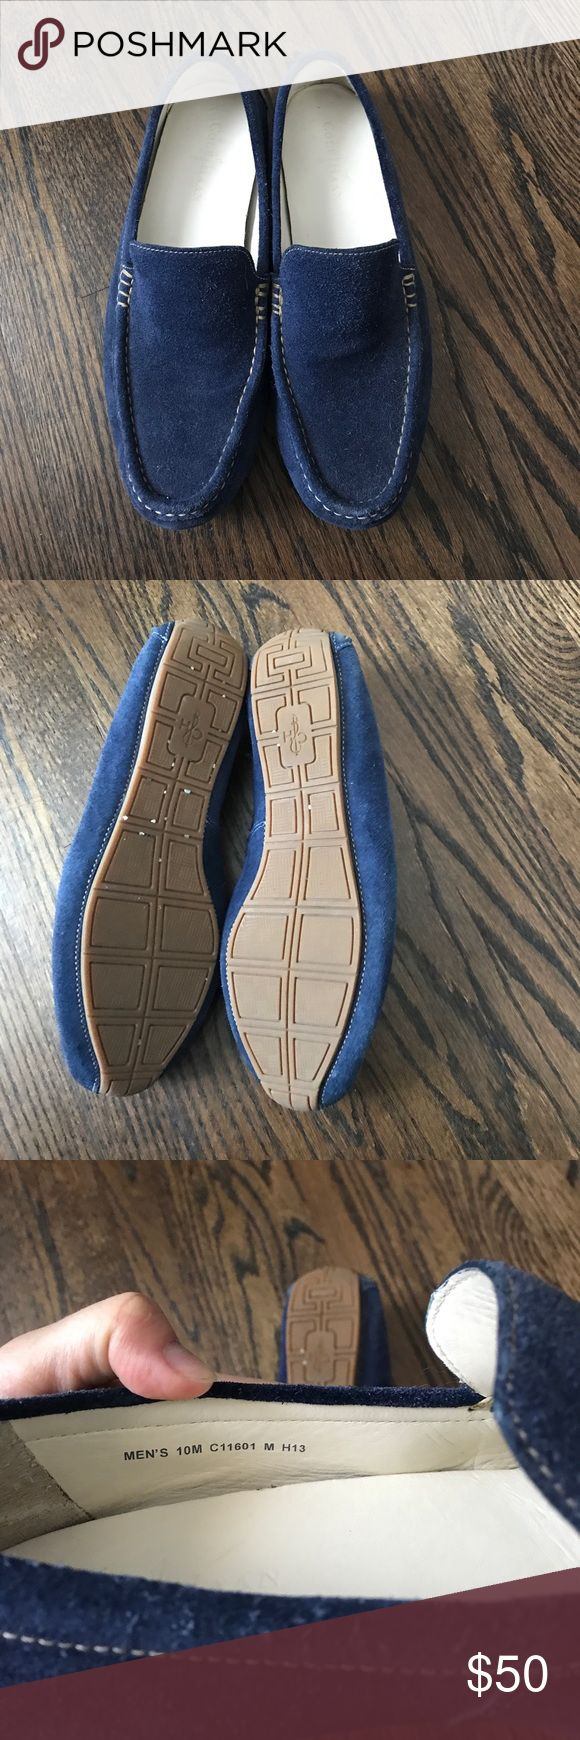 Cole Haan Blue suede Slip On drivers Gorgeous great condition navy blue suede slip on (driving moccasins) from Cole Haan. These have barely been worn and in great condition. Have had a waterproofing suede protectant applied. Cole Haan Shoes Loafers & Slip-Ons